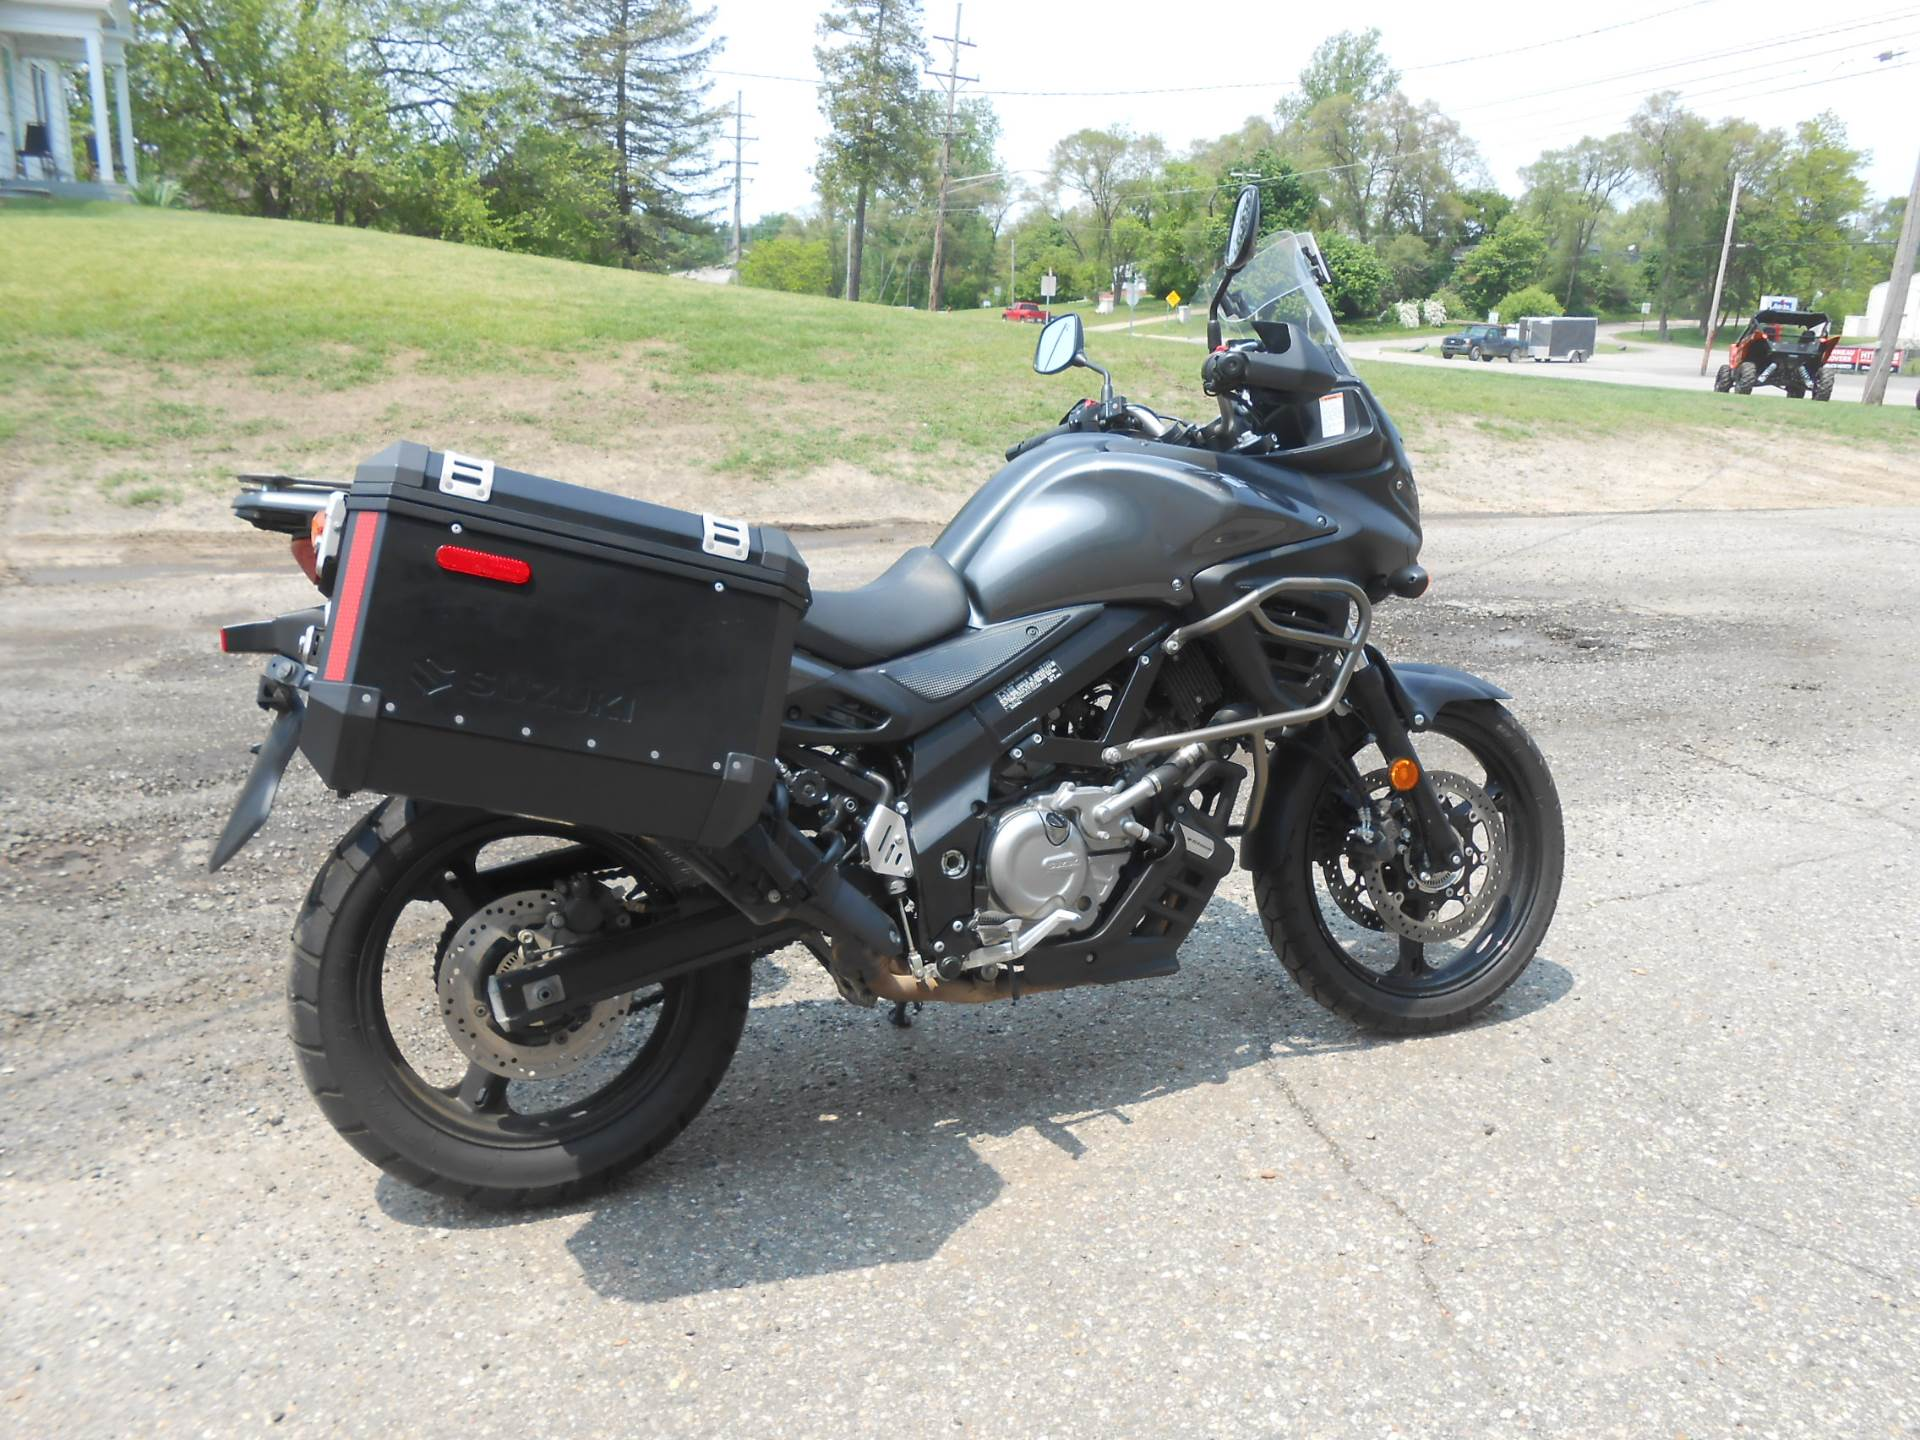 2013 Suzuki V-Strom 650 ABS Adventure in Howell, Michigan - Photo 12